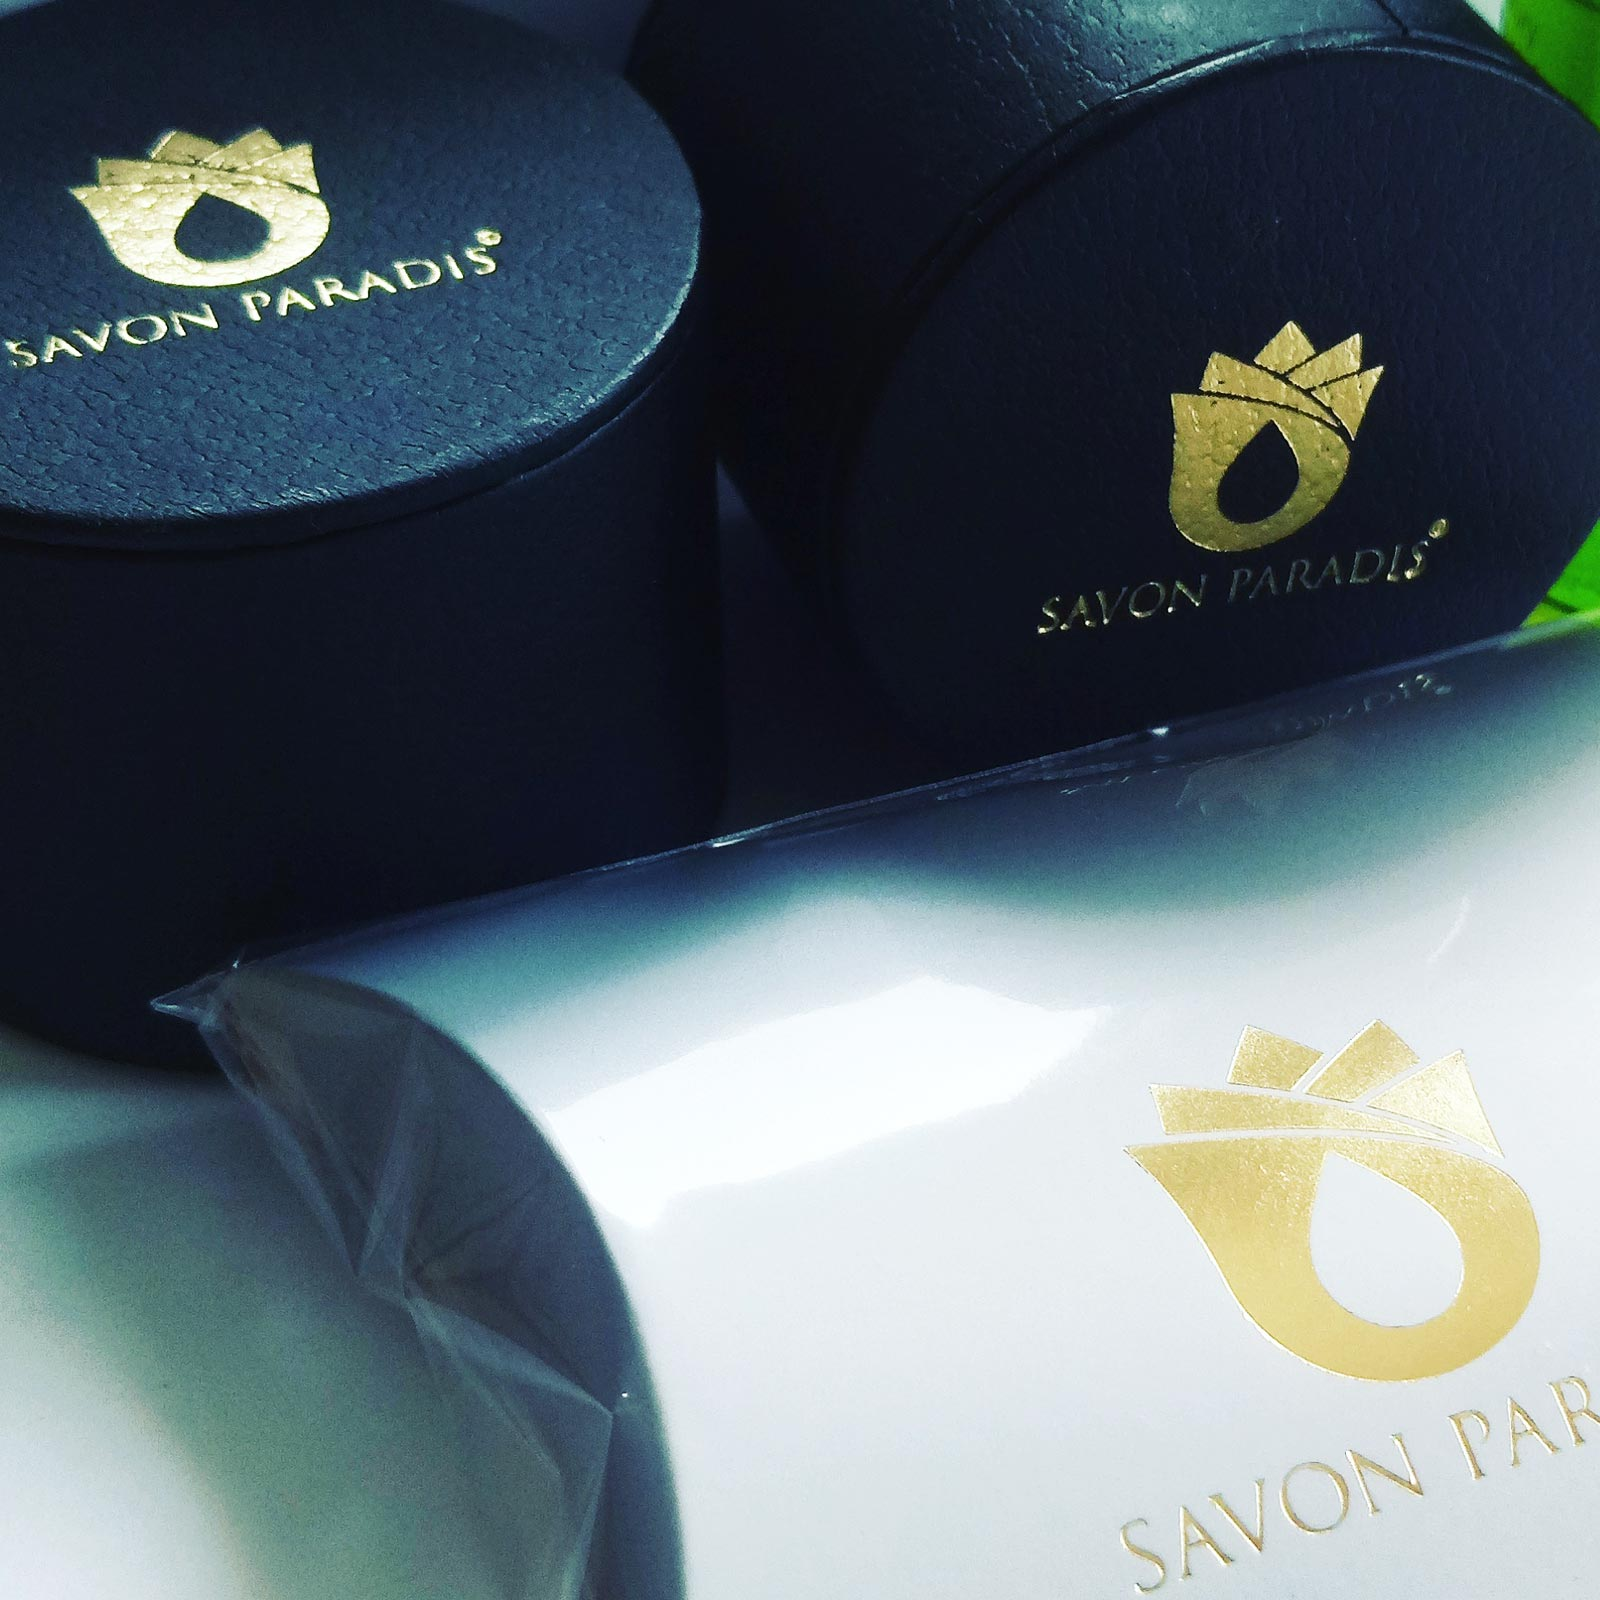 Savon Paradis Launches New Wellness Products 9